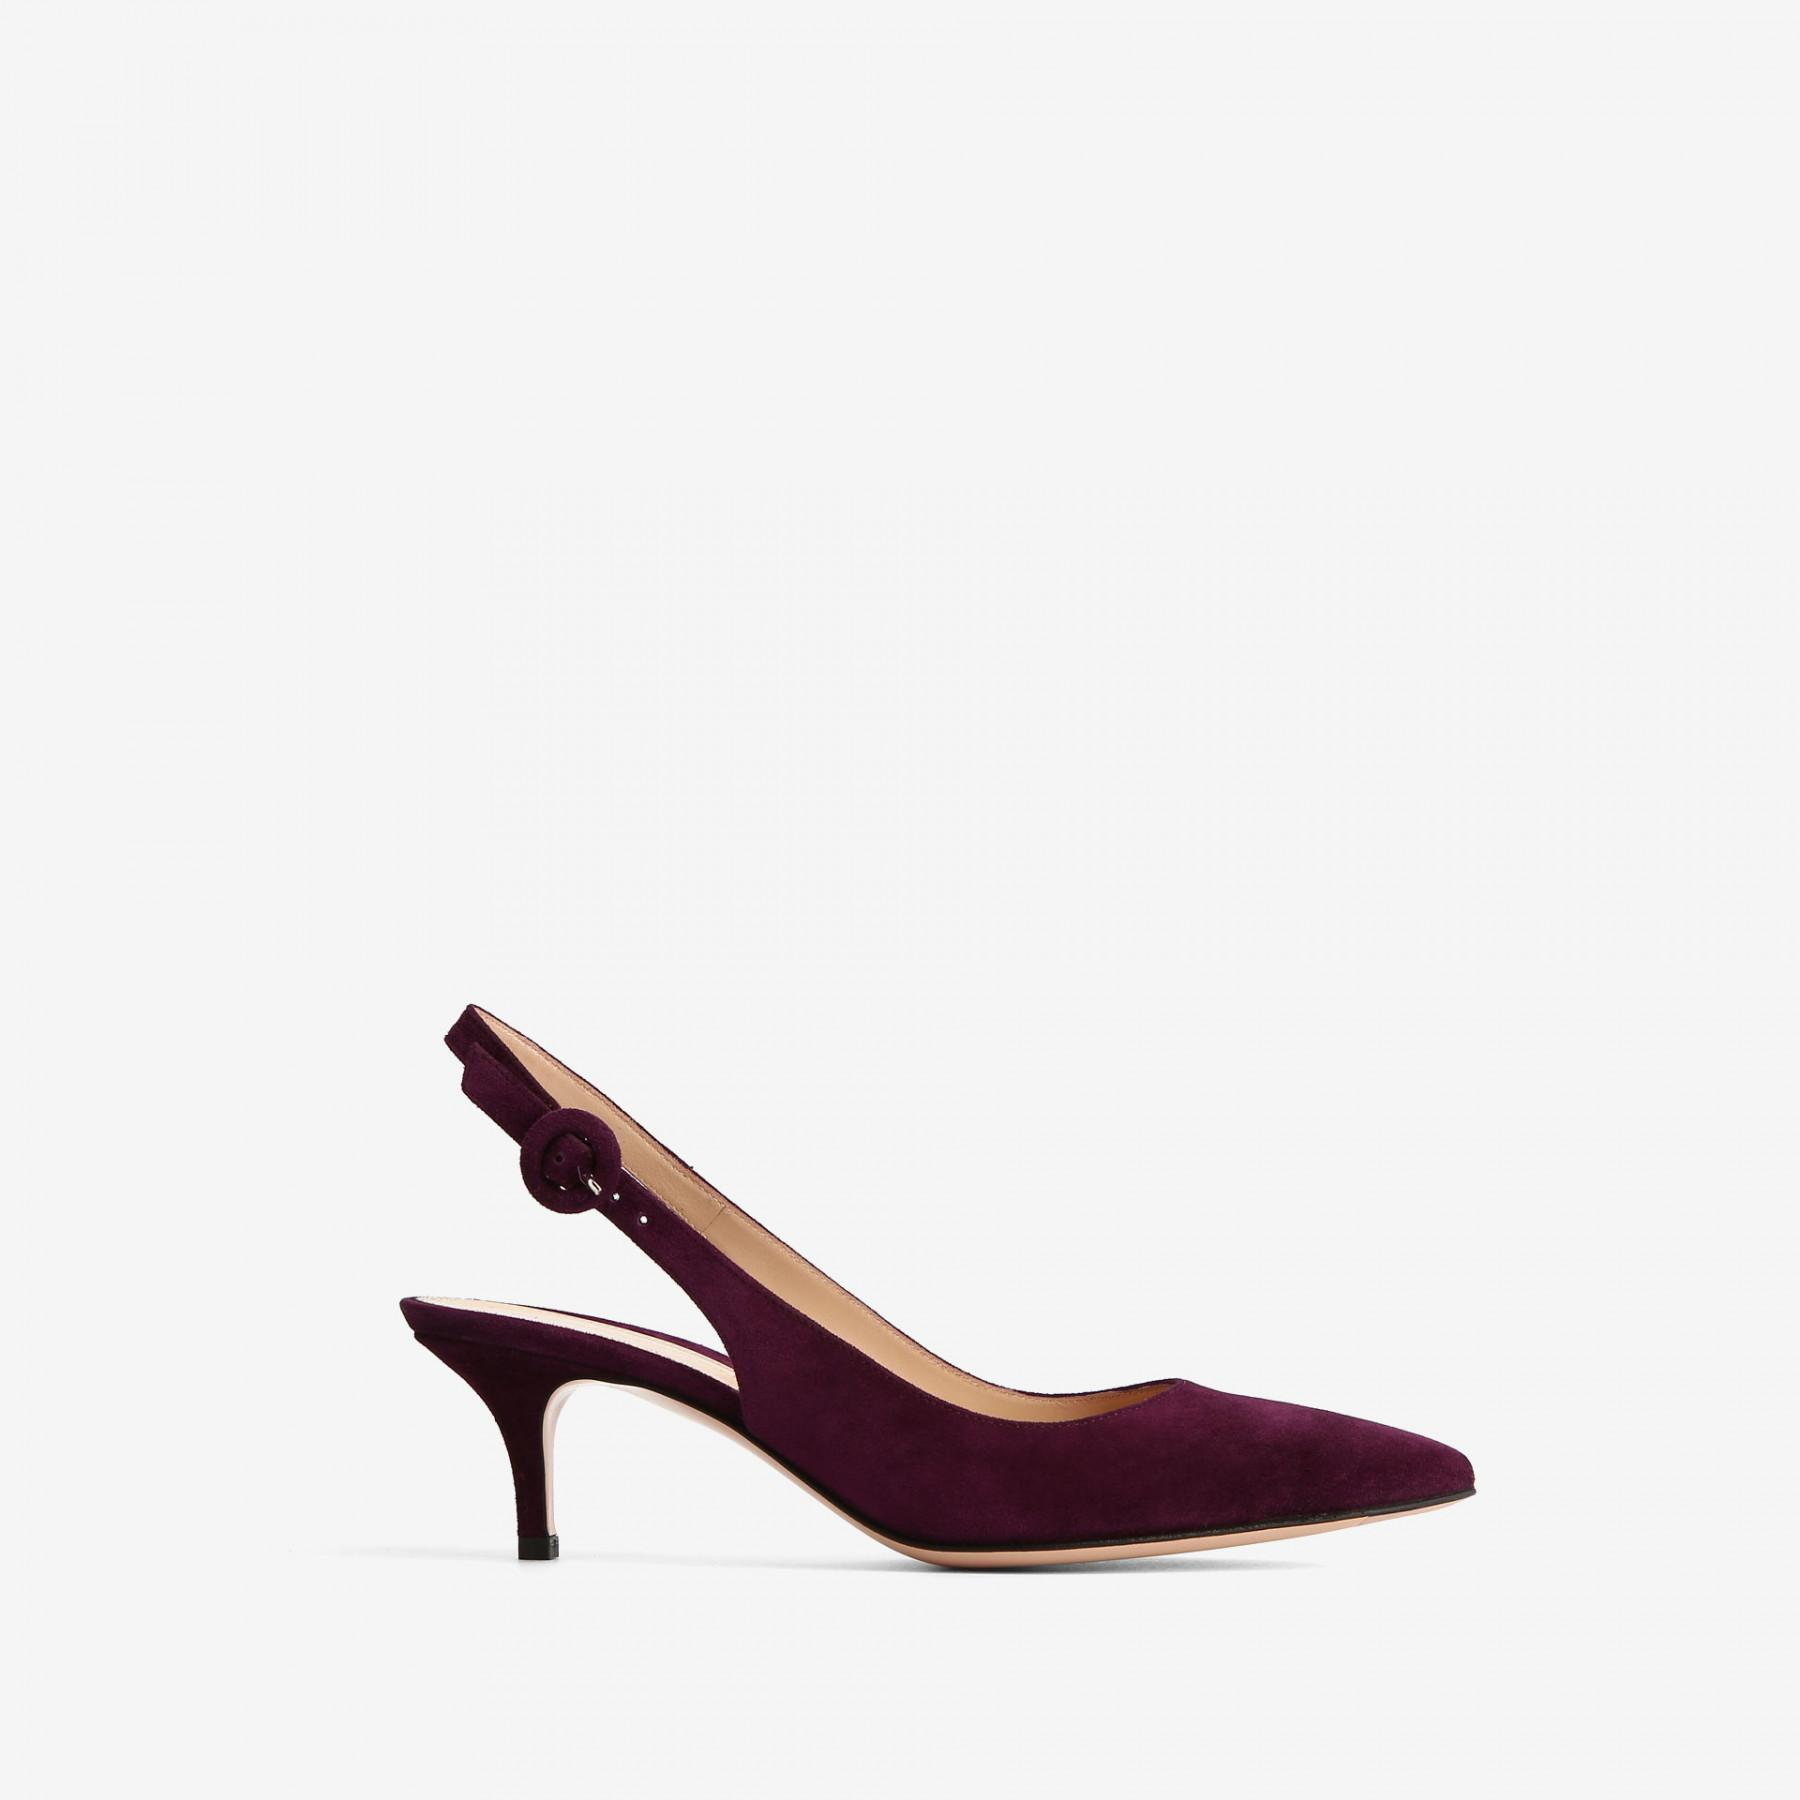 Gianvito Rossi Exclusive to mytheresa.com cHRJEZG0